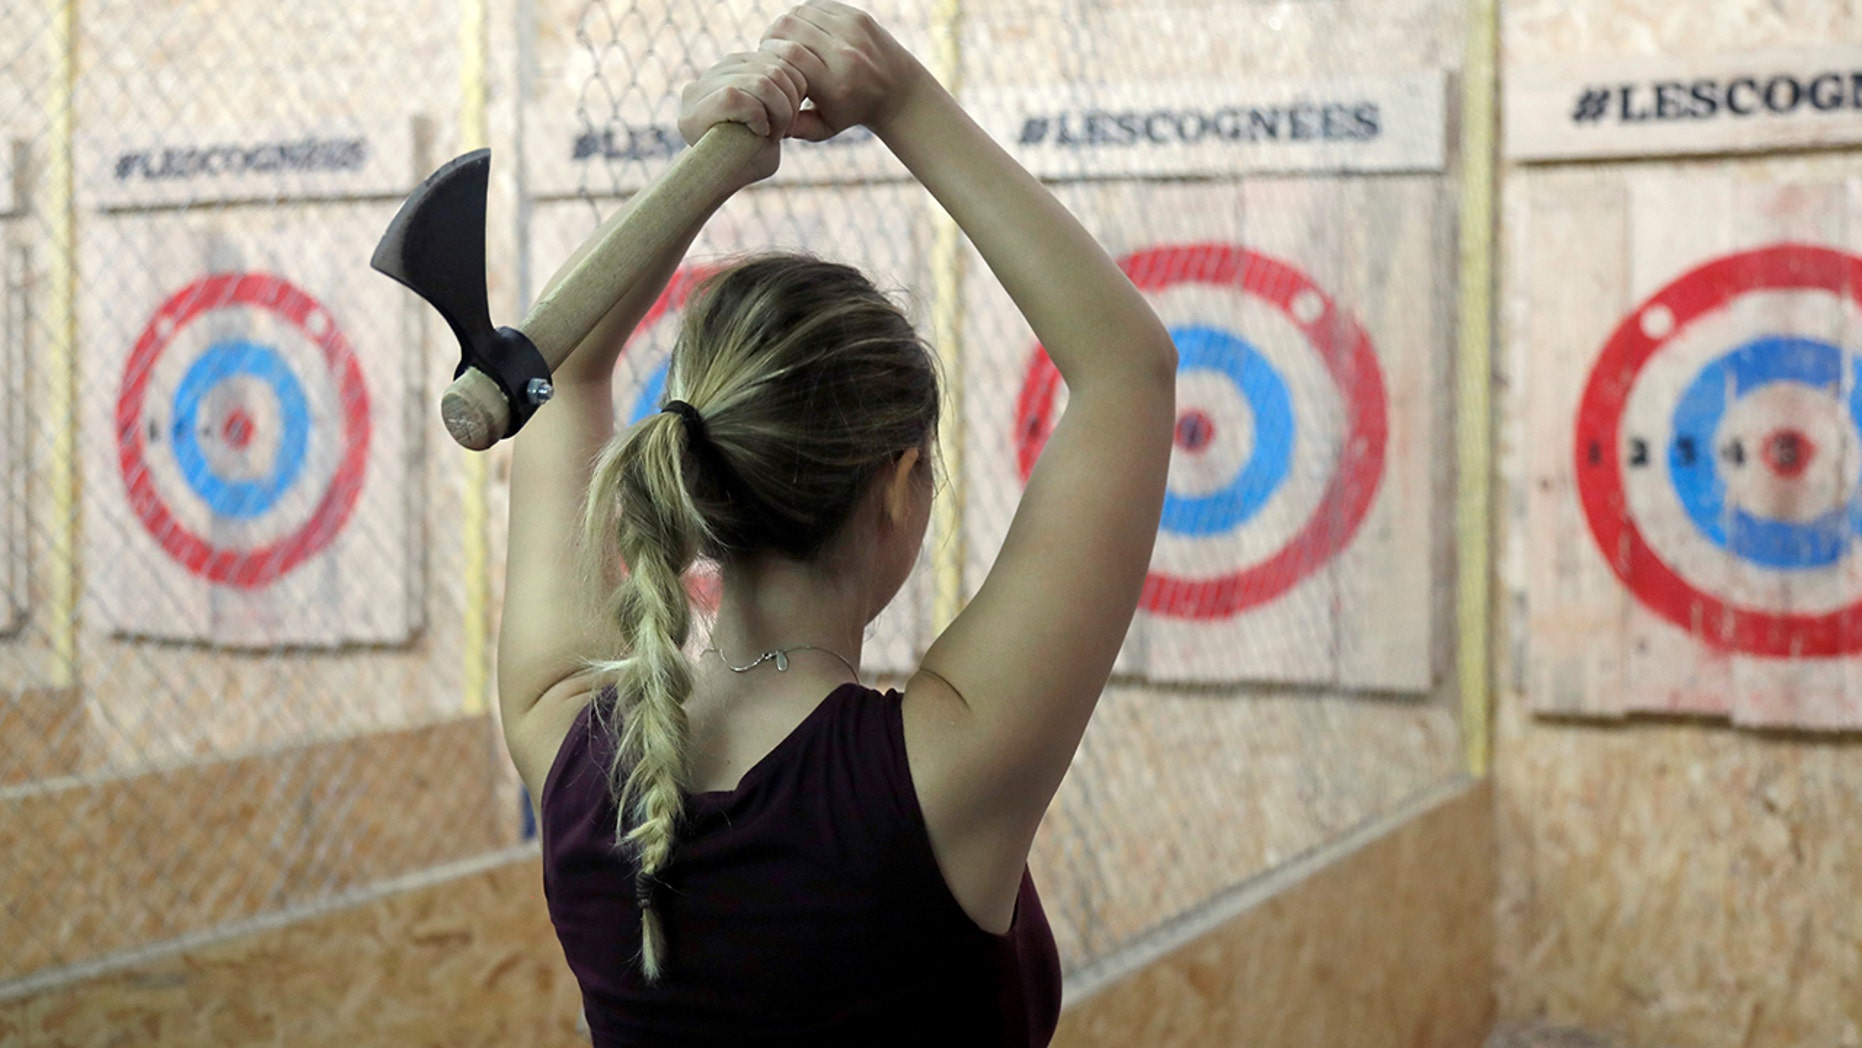 A Salt lake City ax-throwing venue was granted a beer license on Tuesday so patrons can hurl axes, like pictured above, while drinking a cold beer.